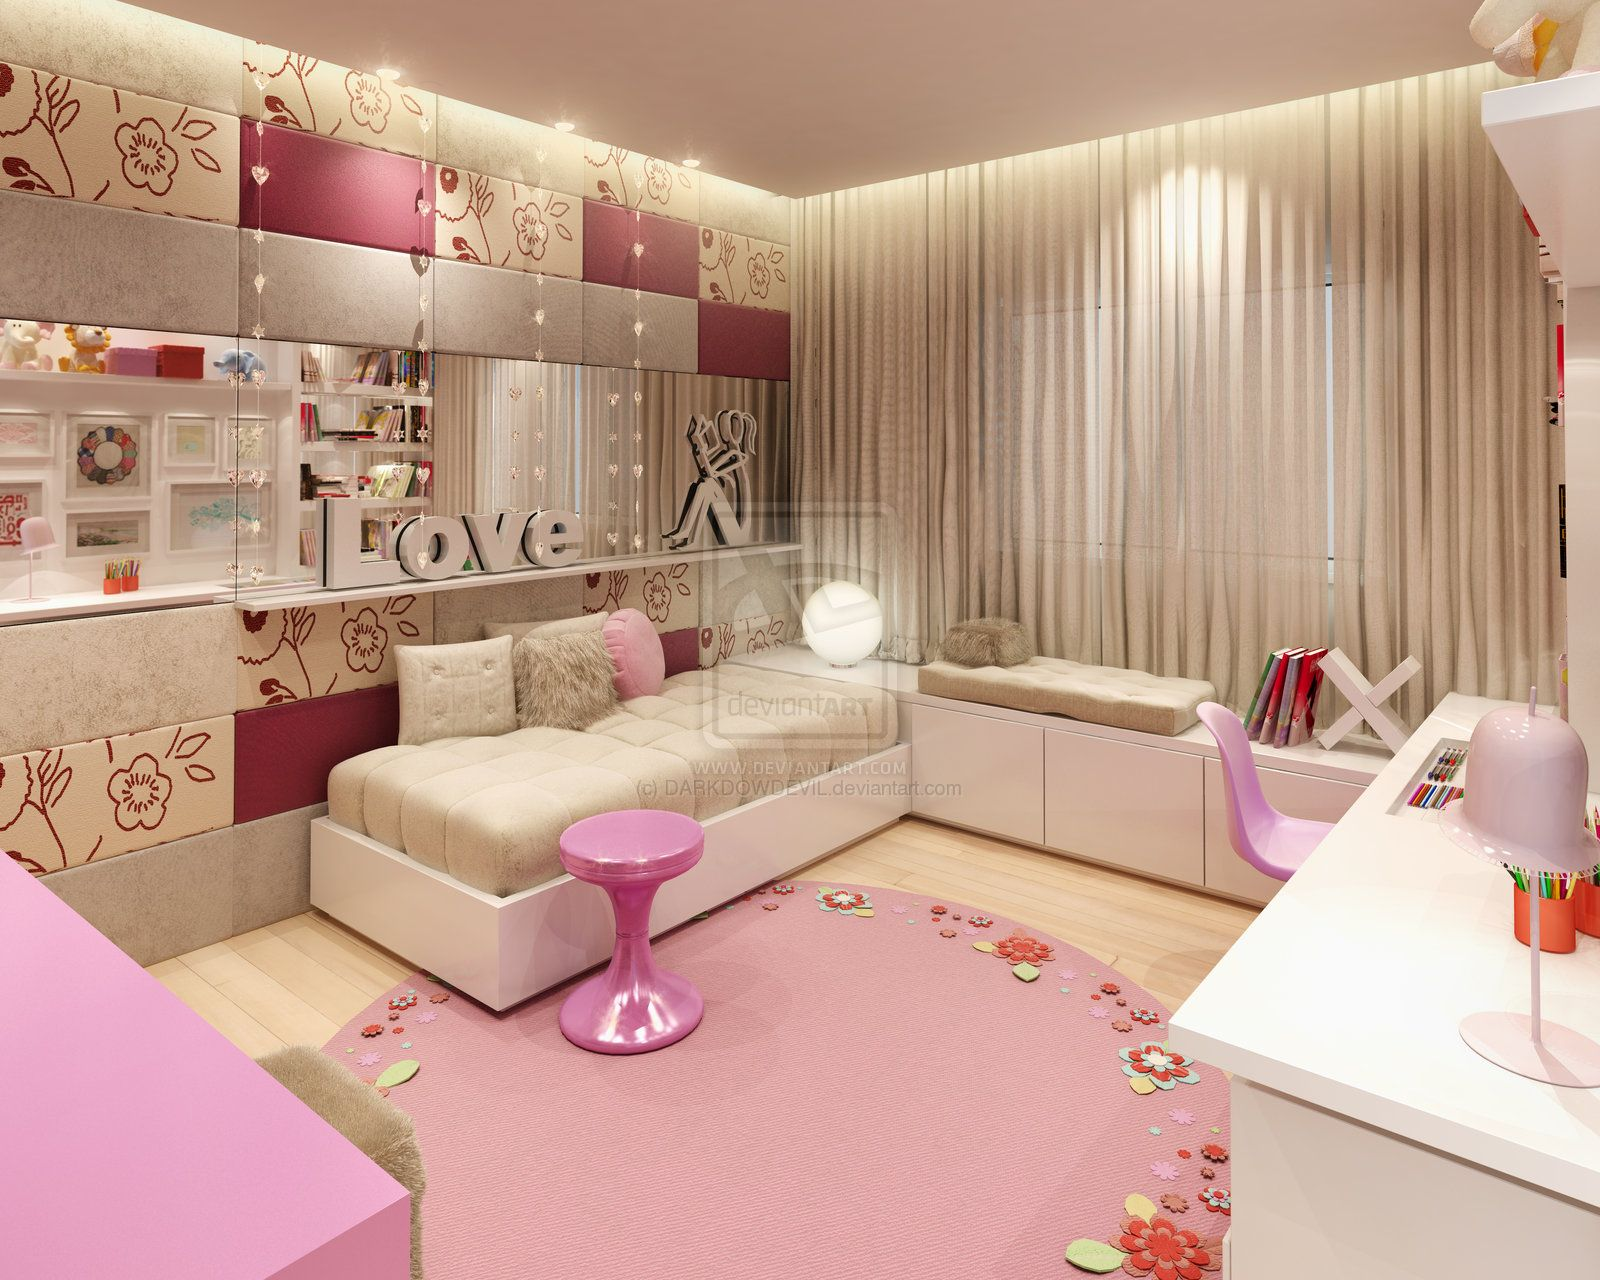 Rooms For Girl 30 dream interior design ideas for teenage girl's rooms | bedrooms